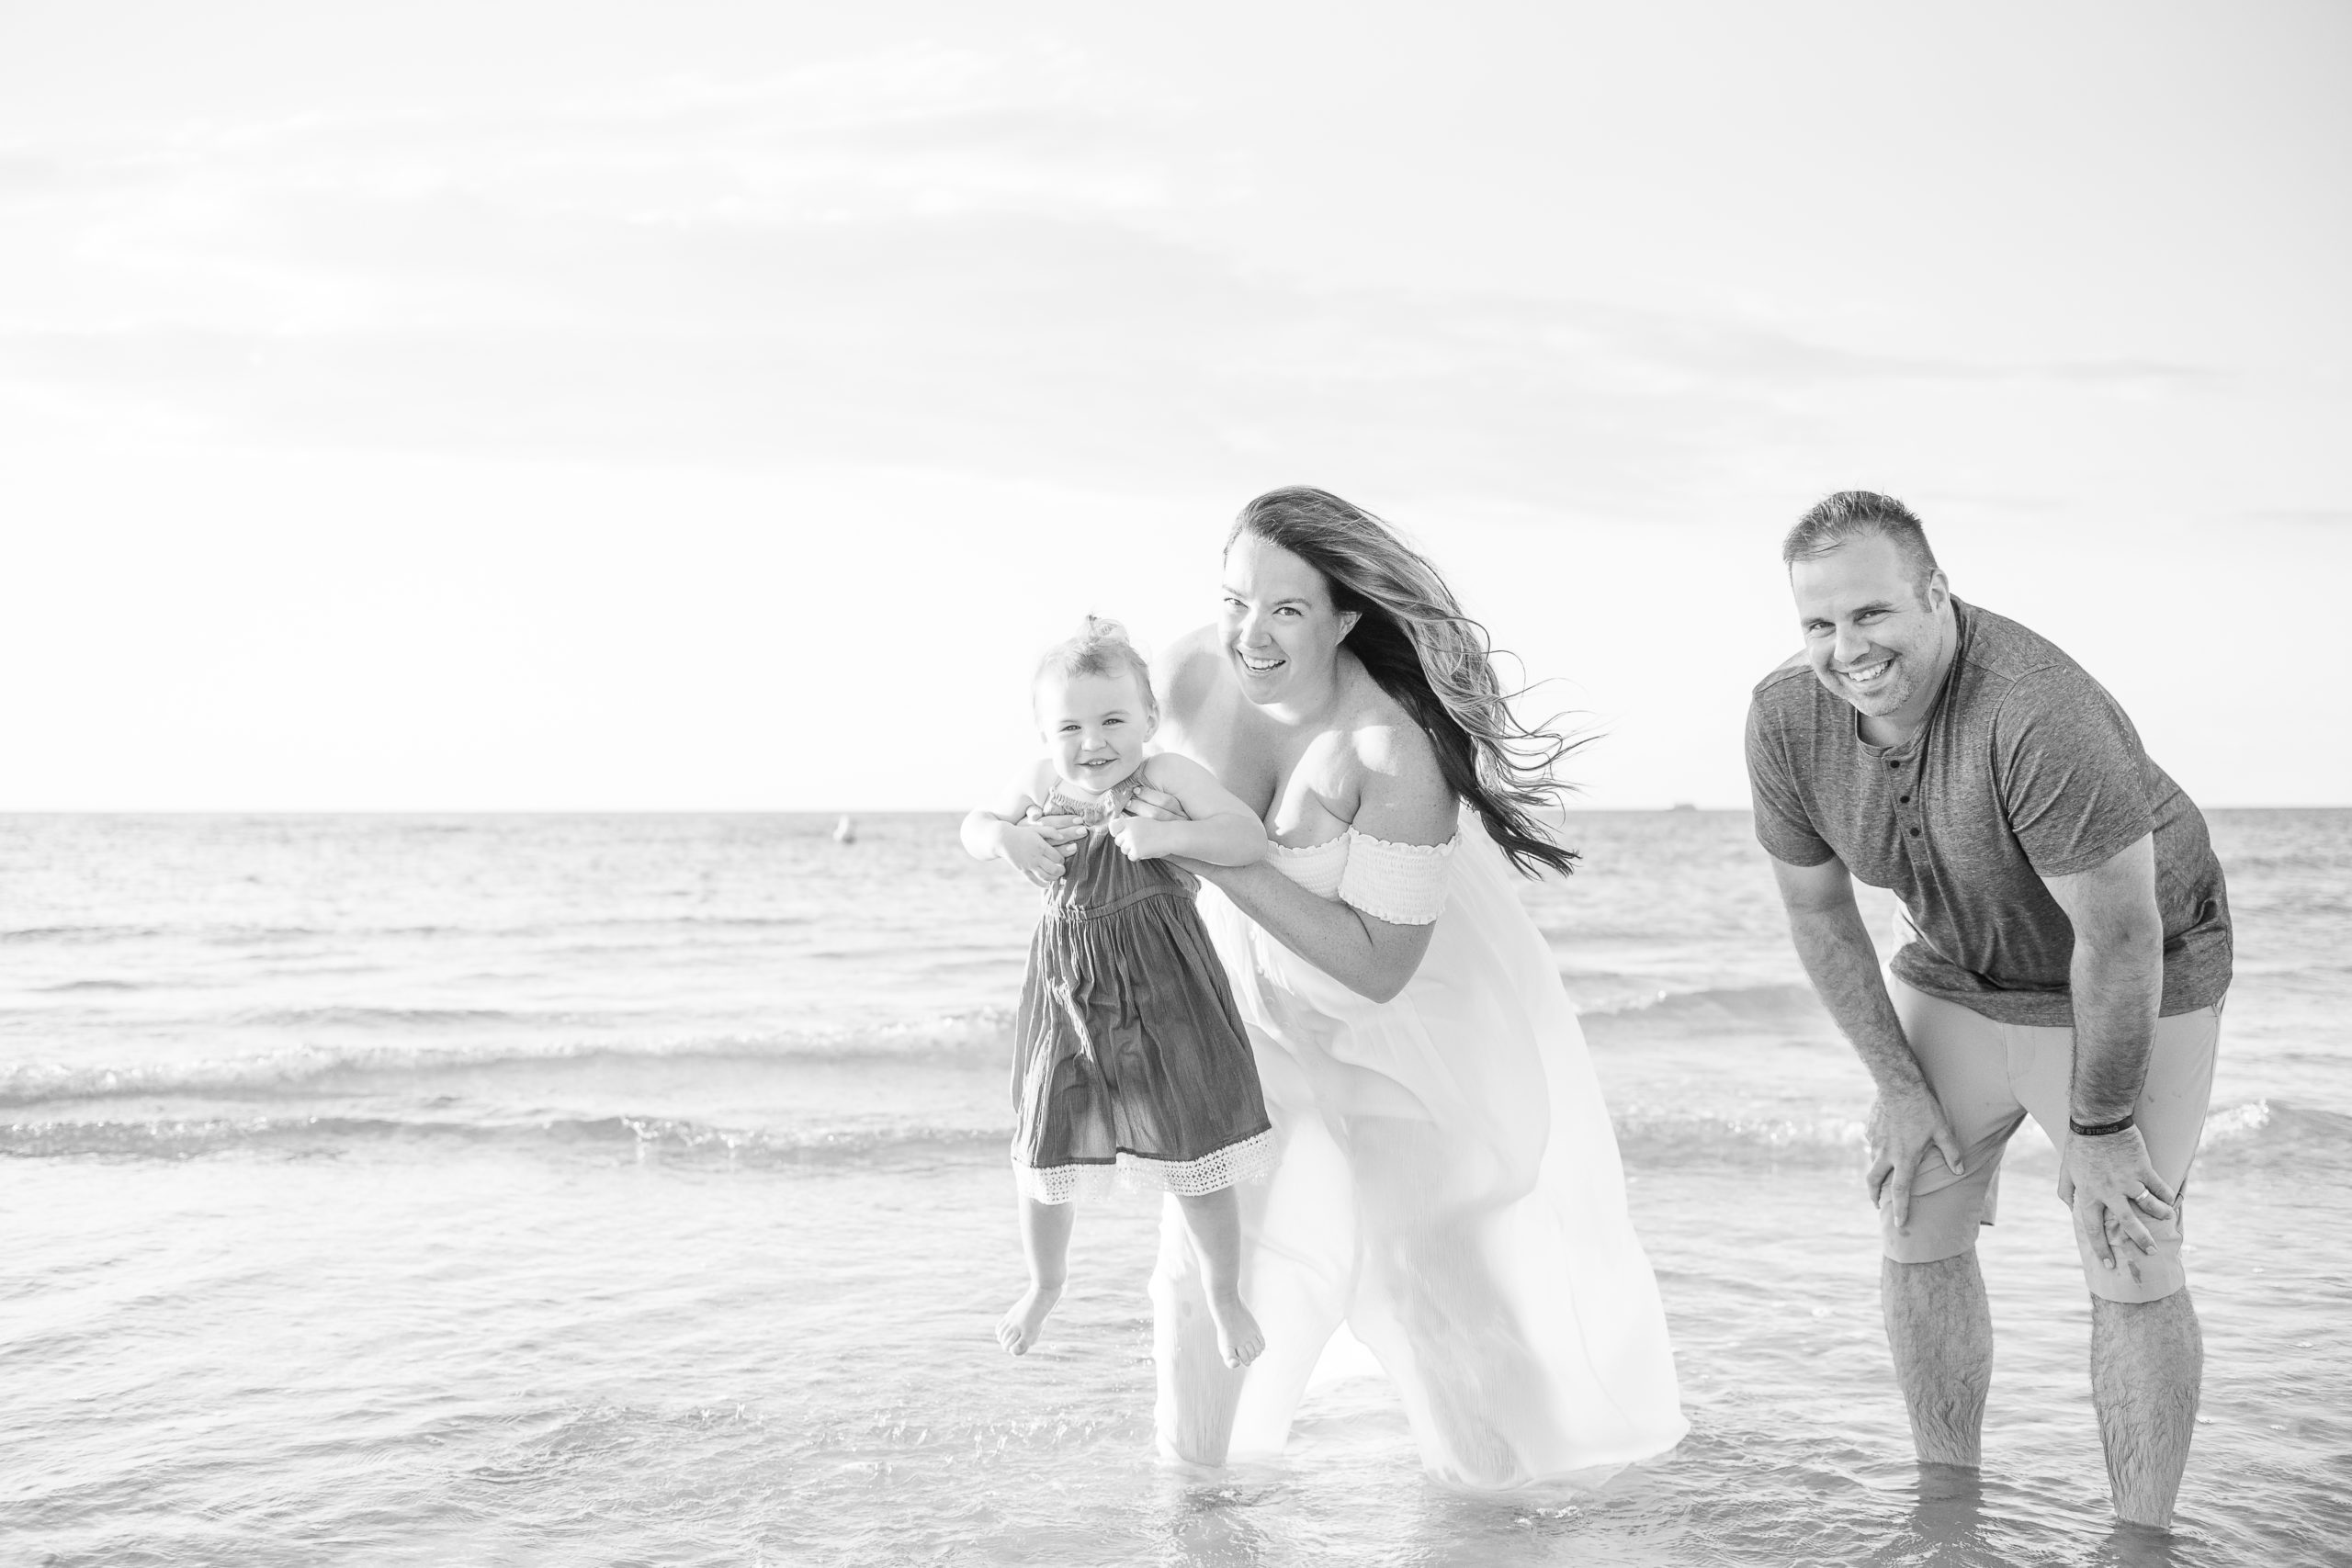 incorporating fun into your family photo sessions